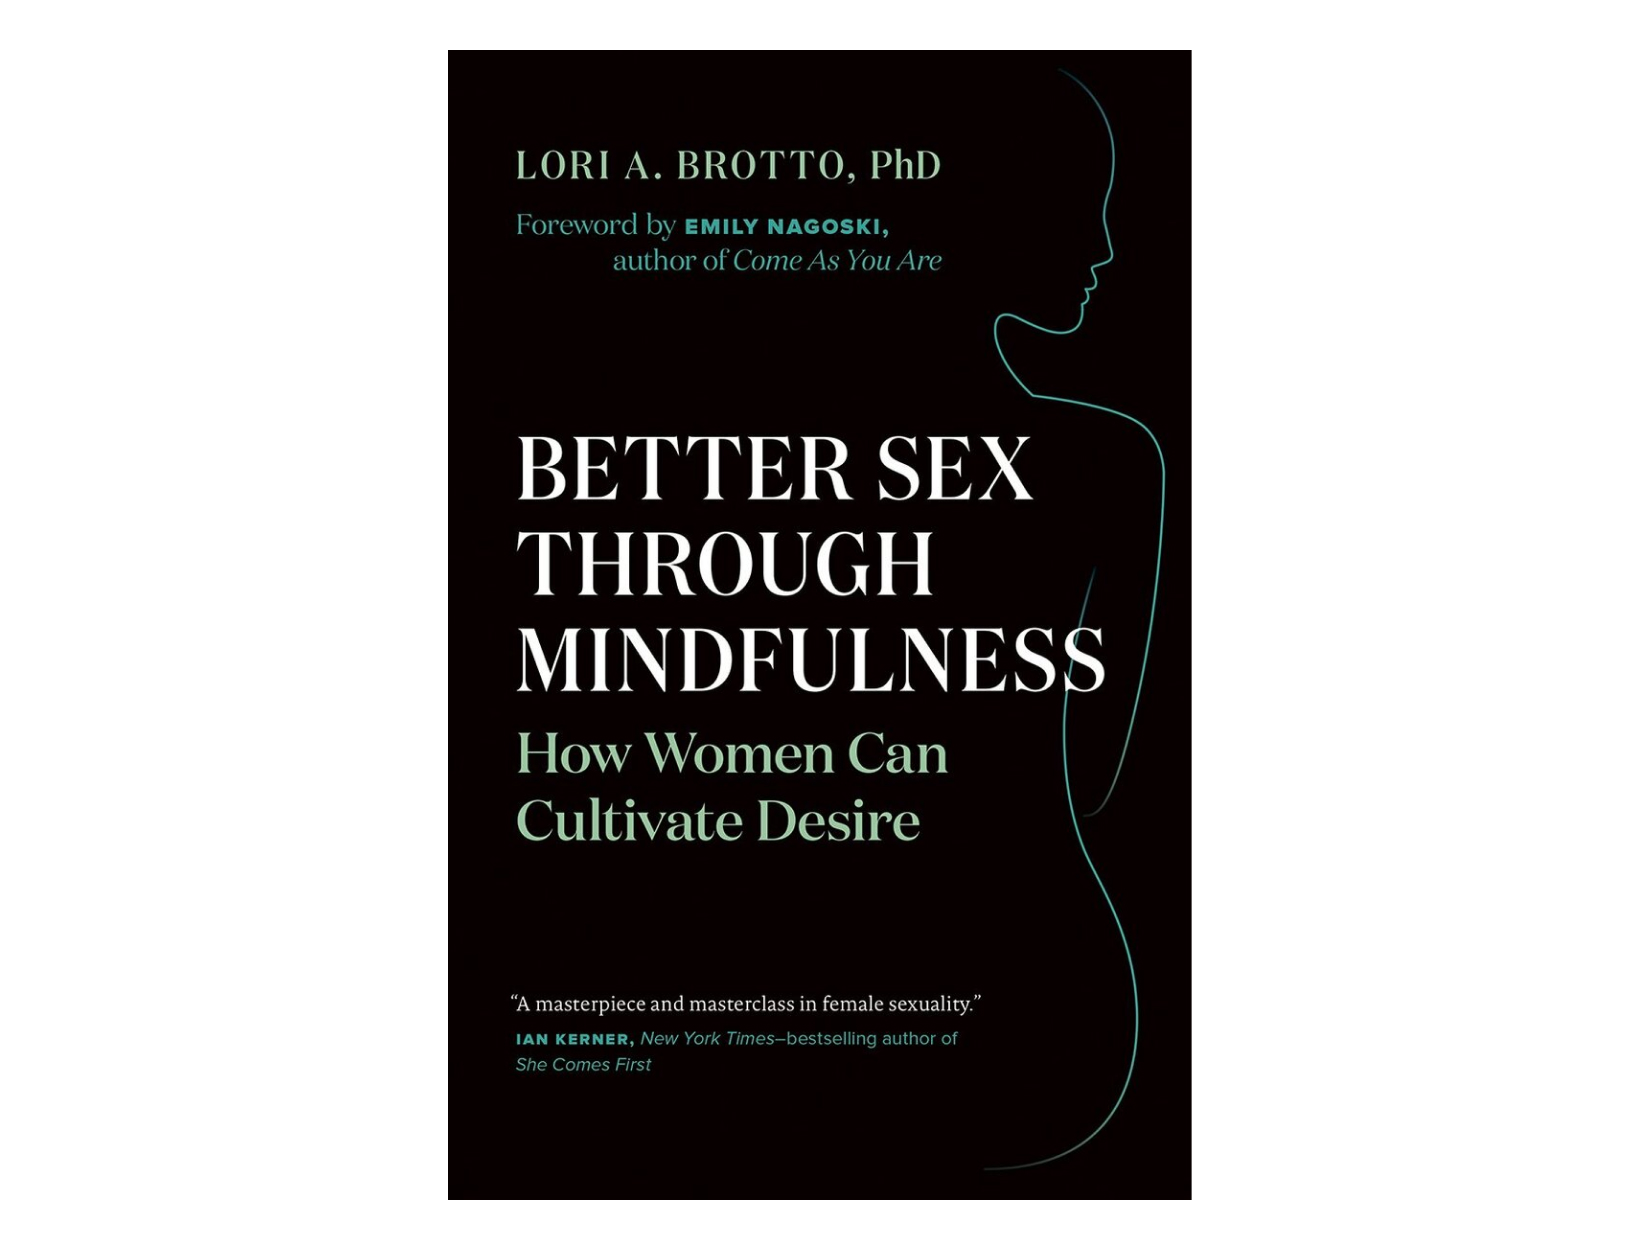 <em>Better Sex through Mindfulness</em> by Lori A. Brotto, PhD